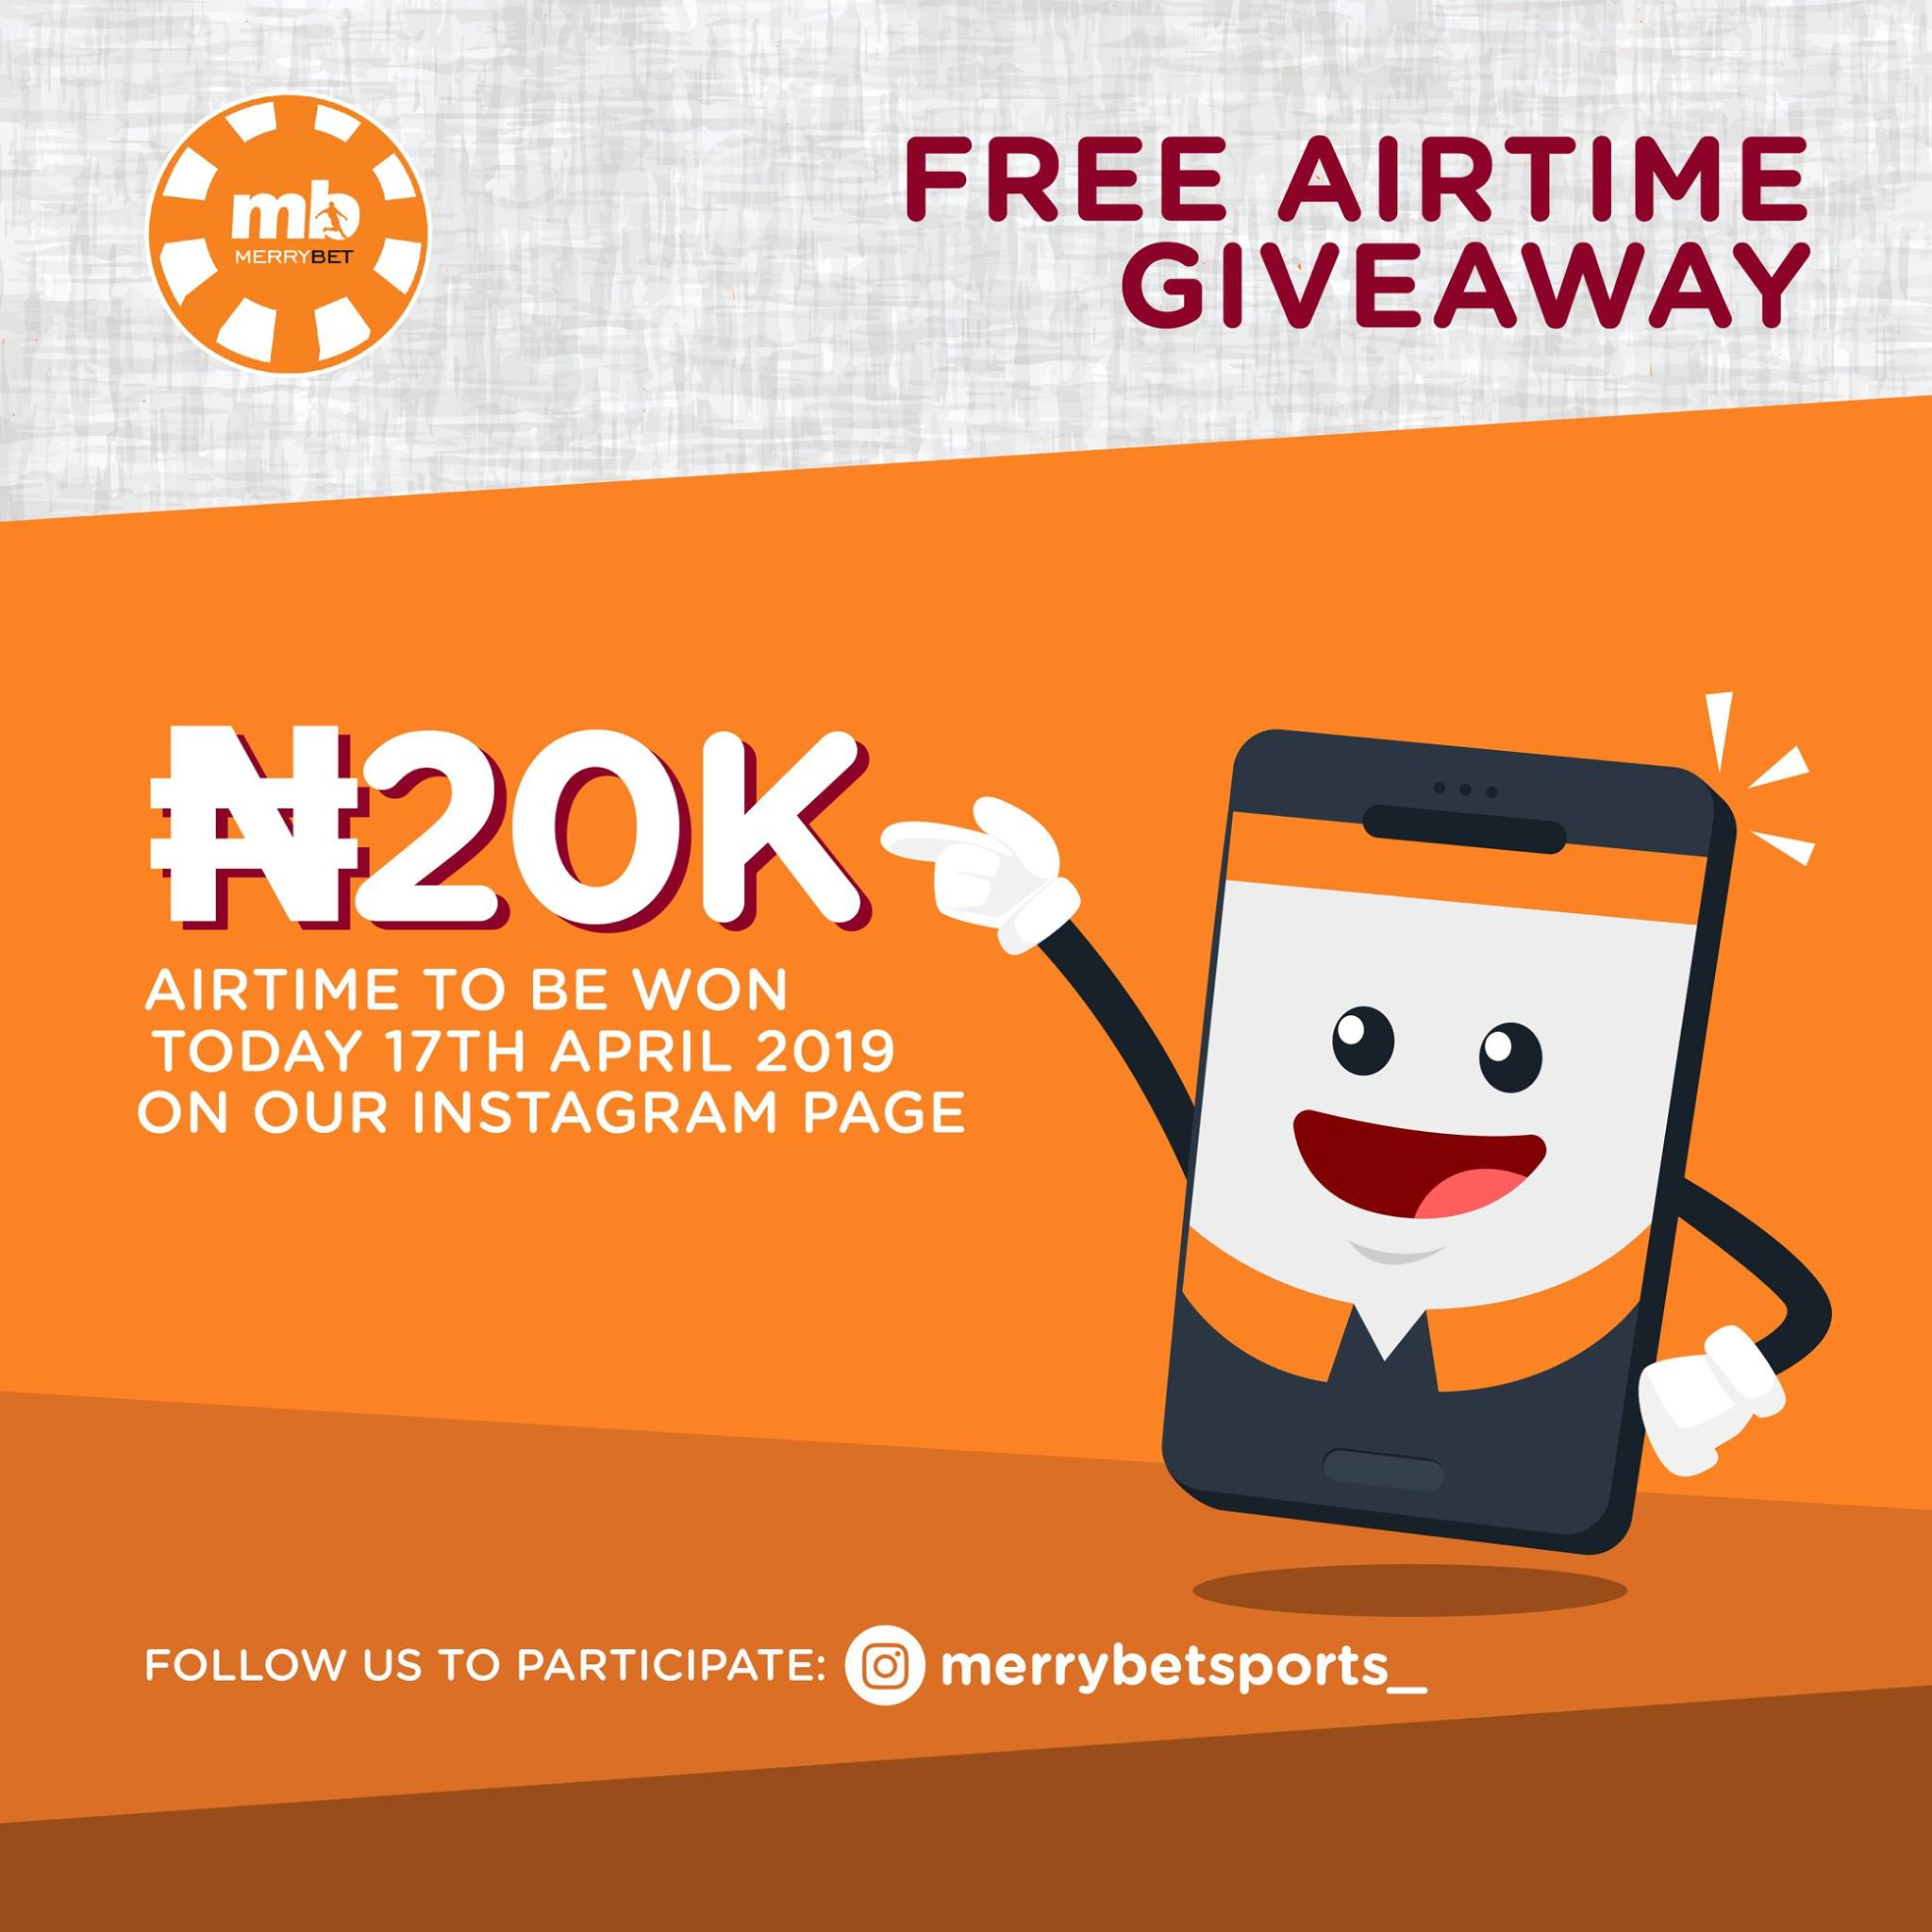 Merrybet Airtime Giveaway Today, on Instagram!!!